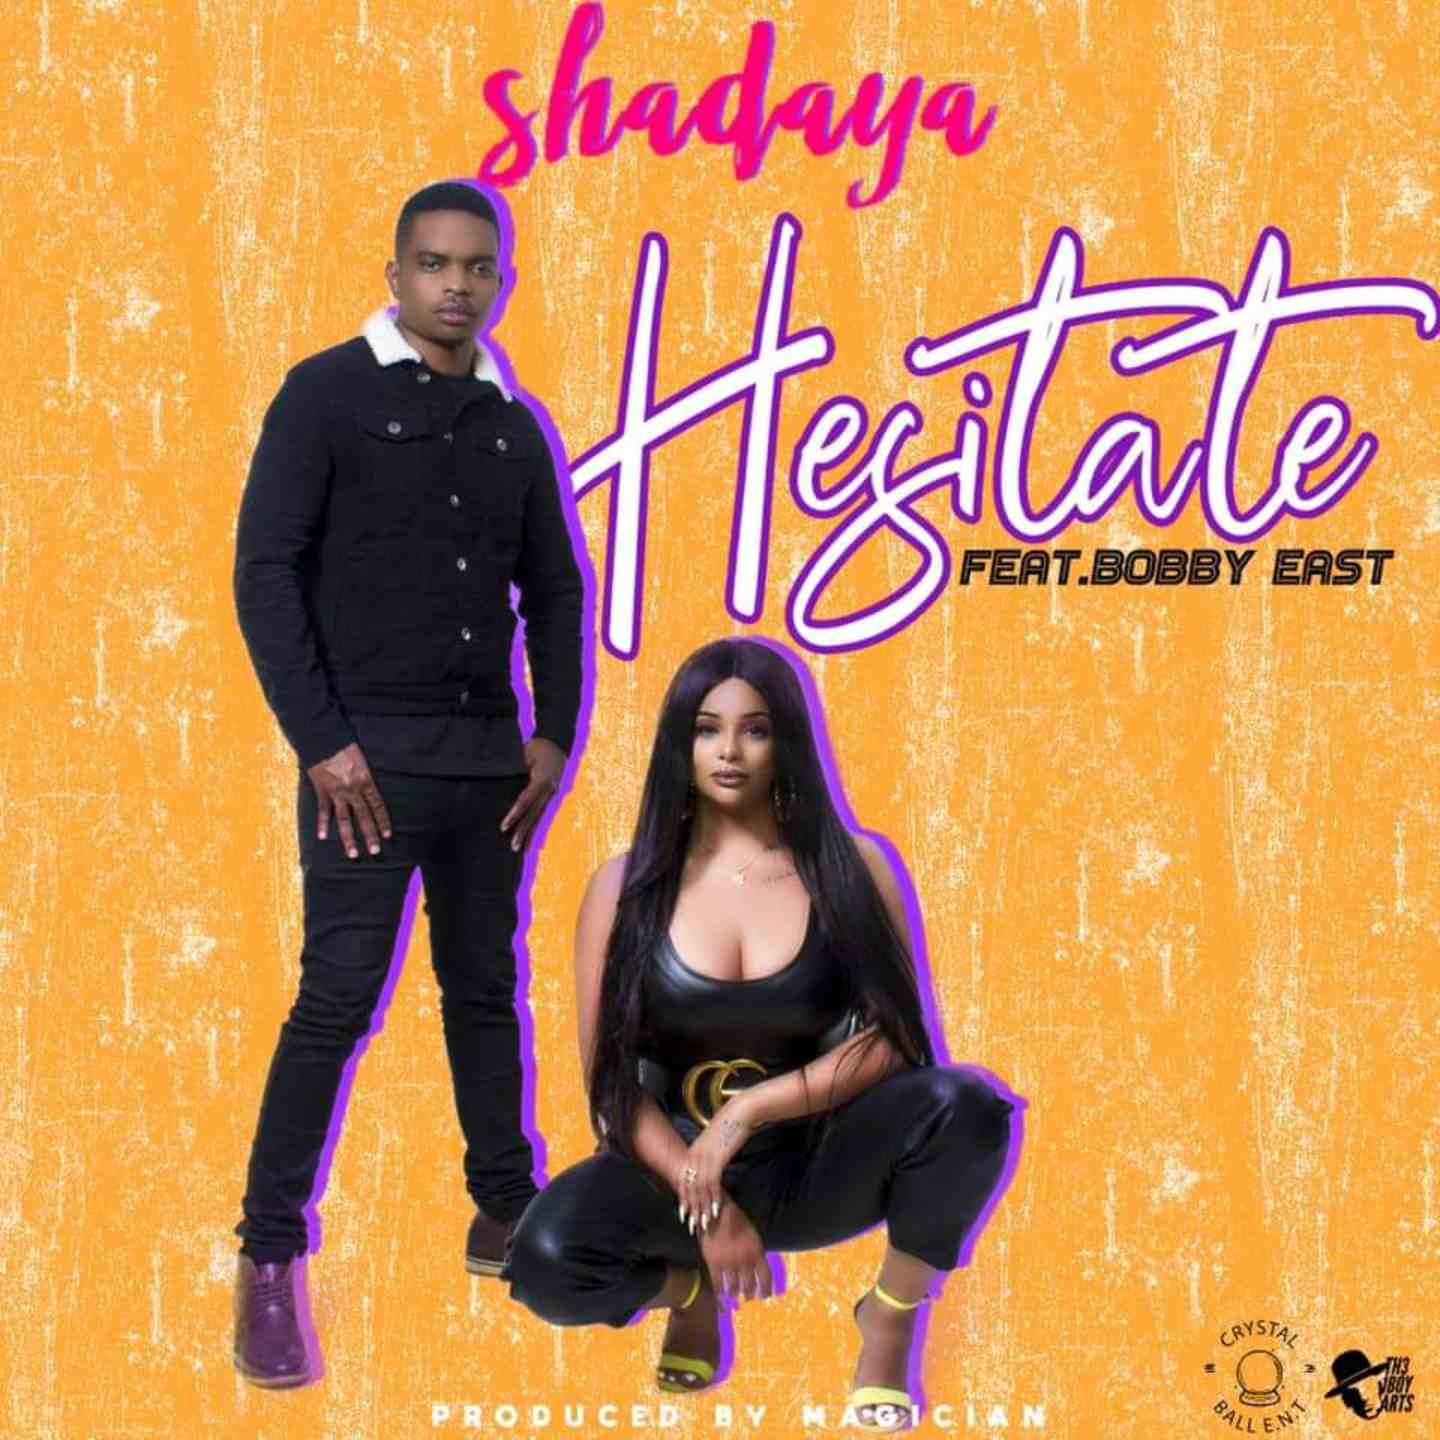 Shadaya Ft. Bobby East - Hesitate